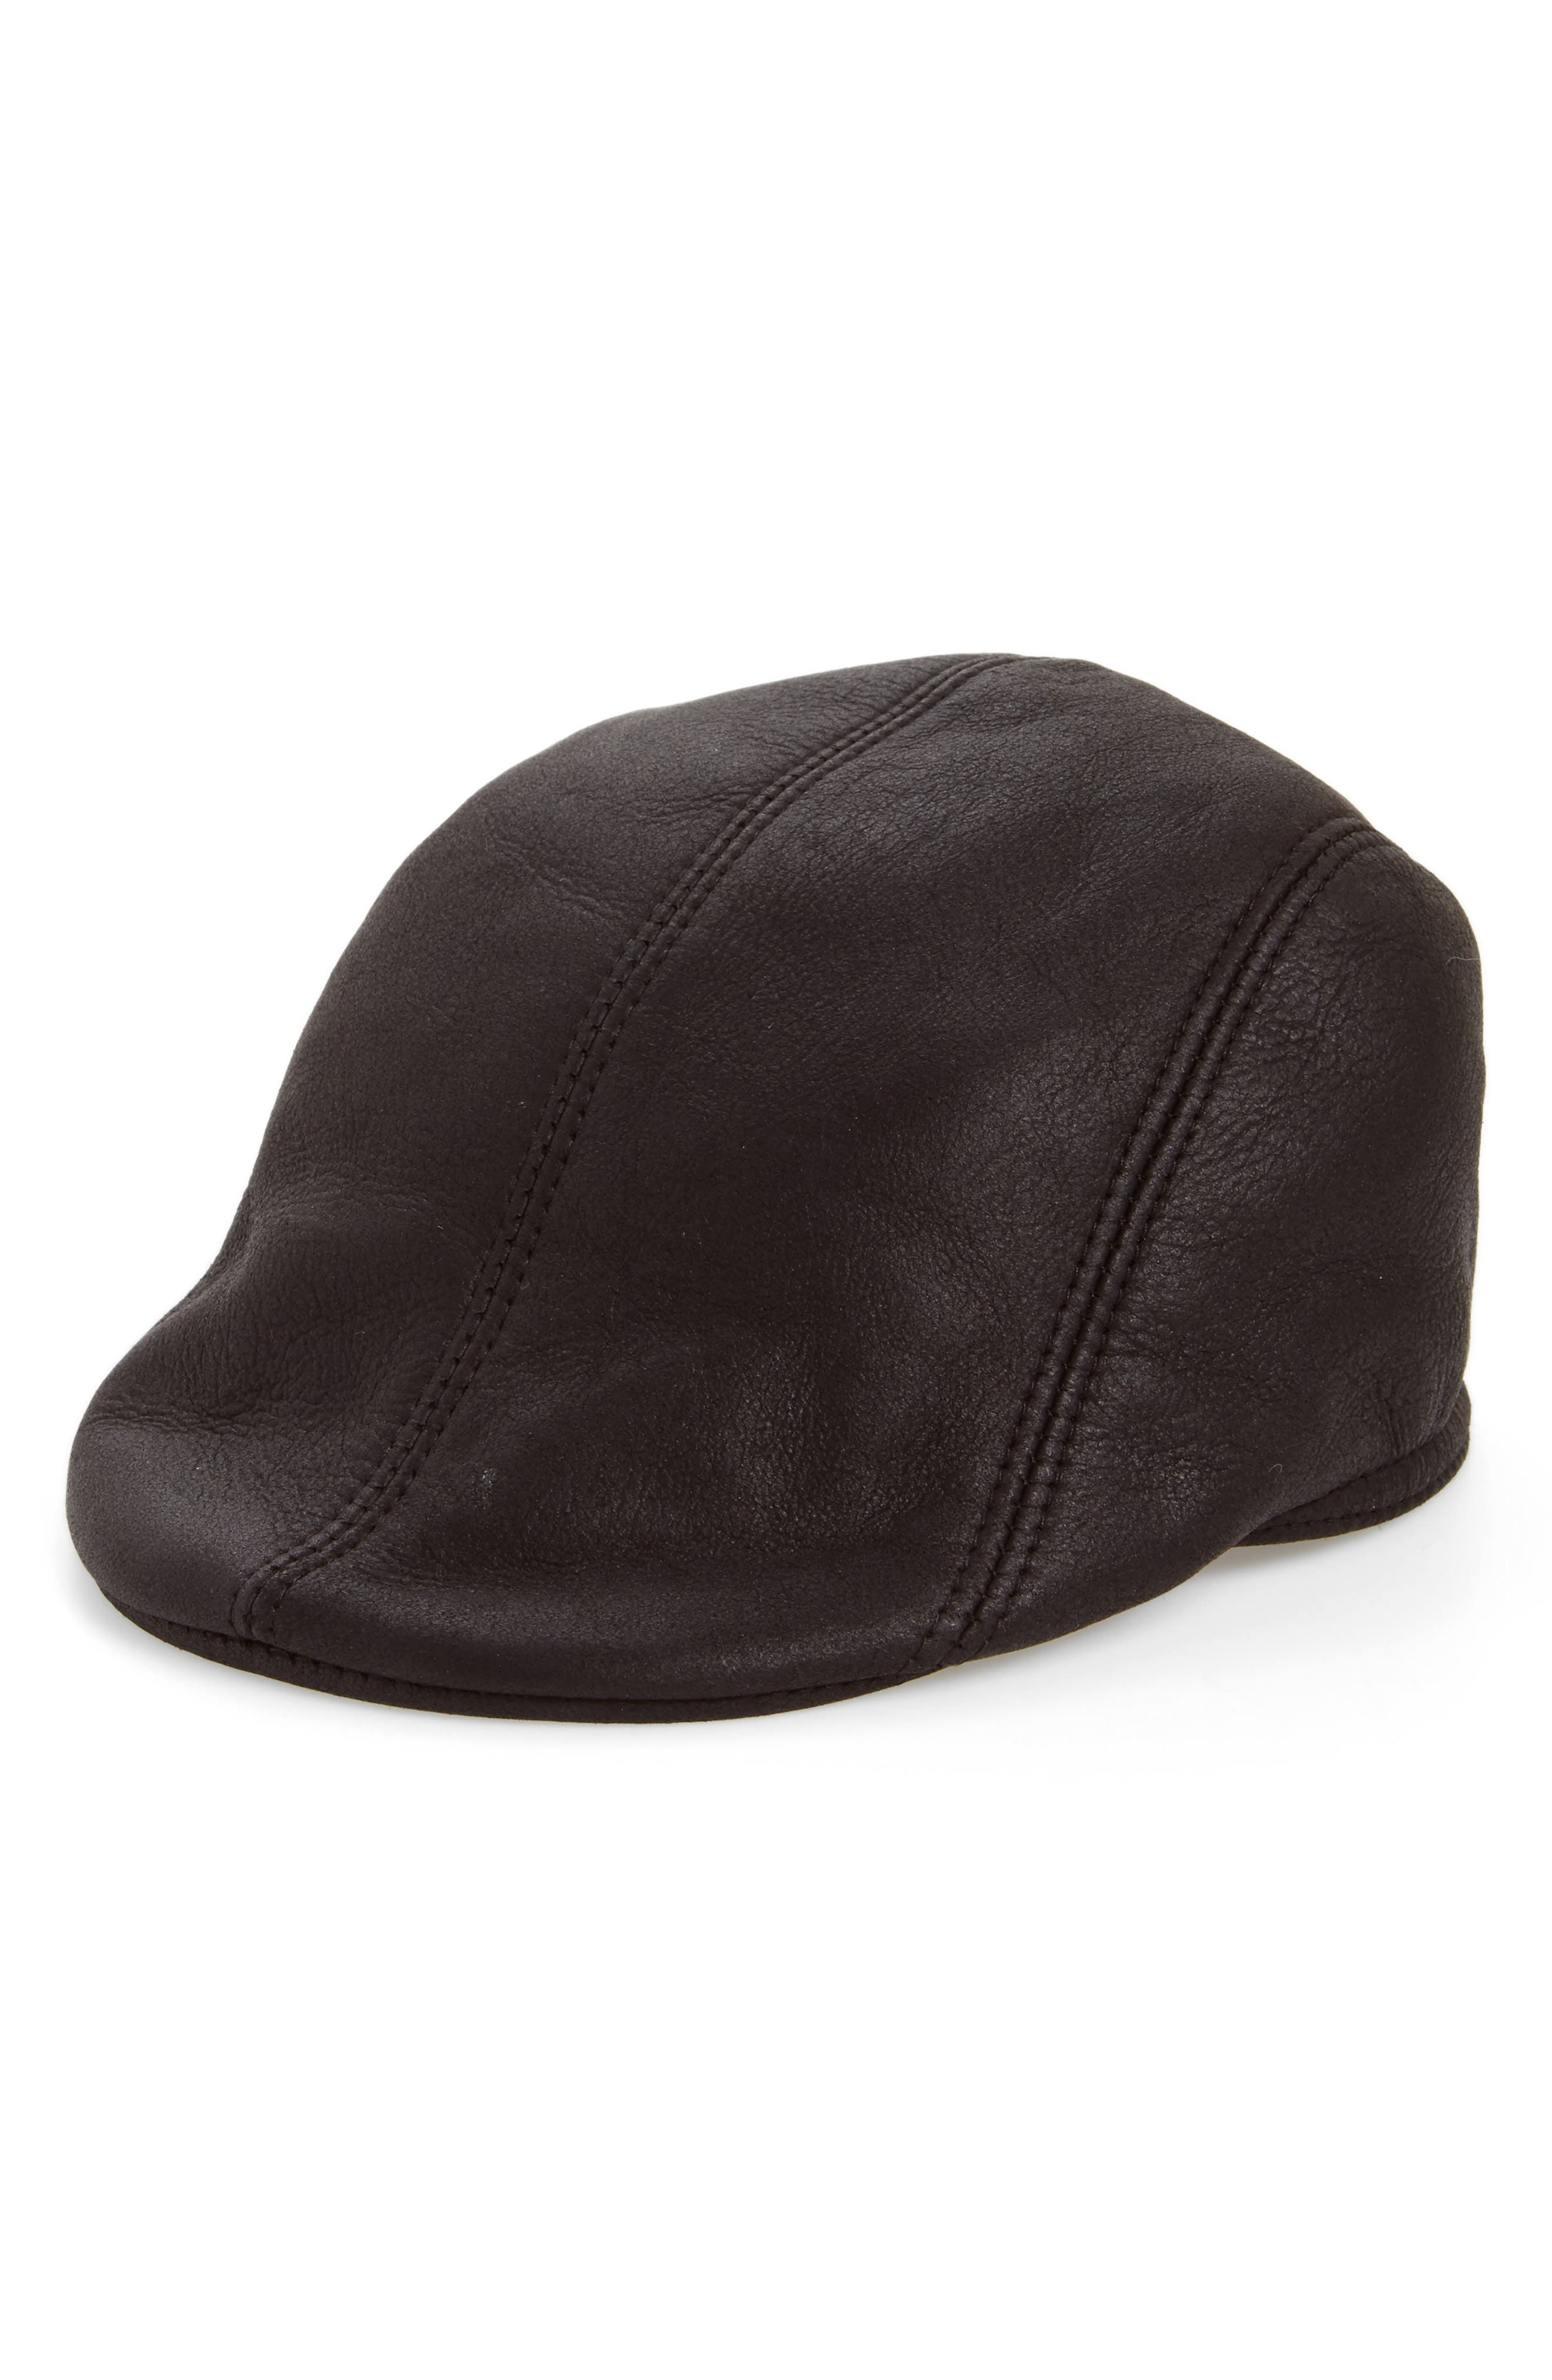 Genuine Shearling Leather Driving Cap,                             Main thumbnail 1, color,                             BLACK